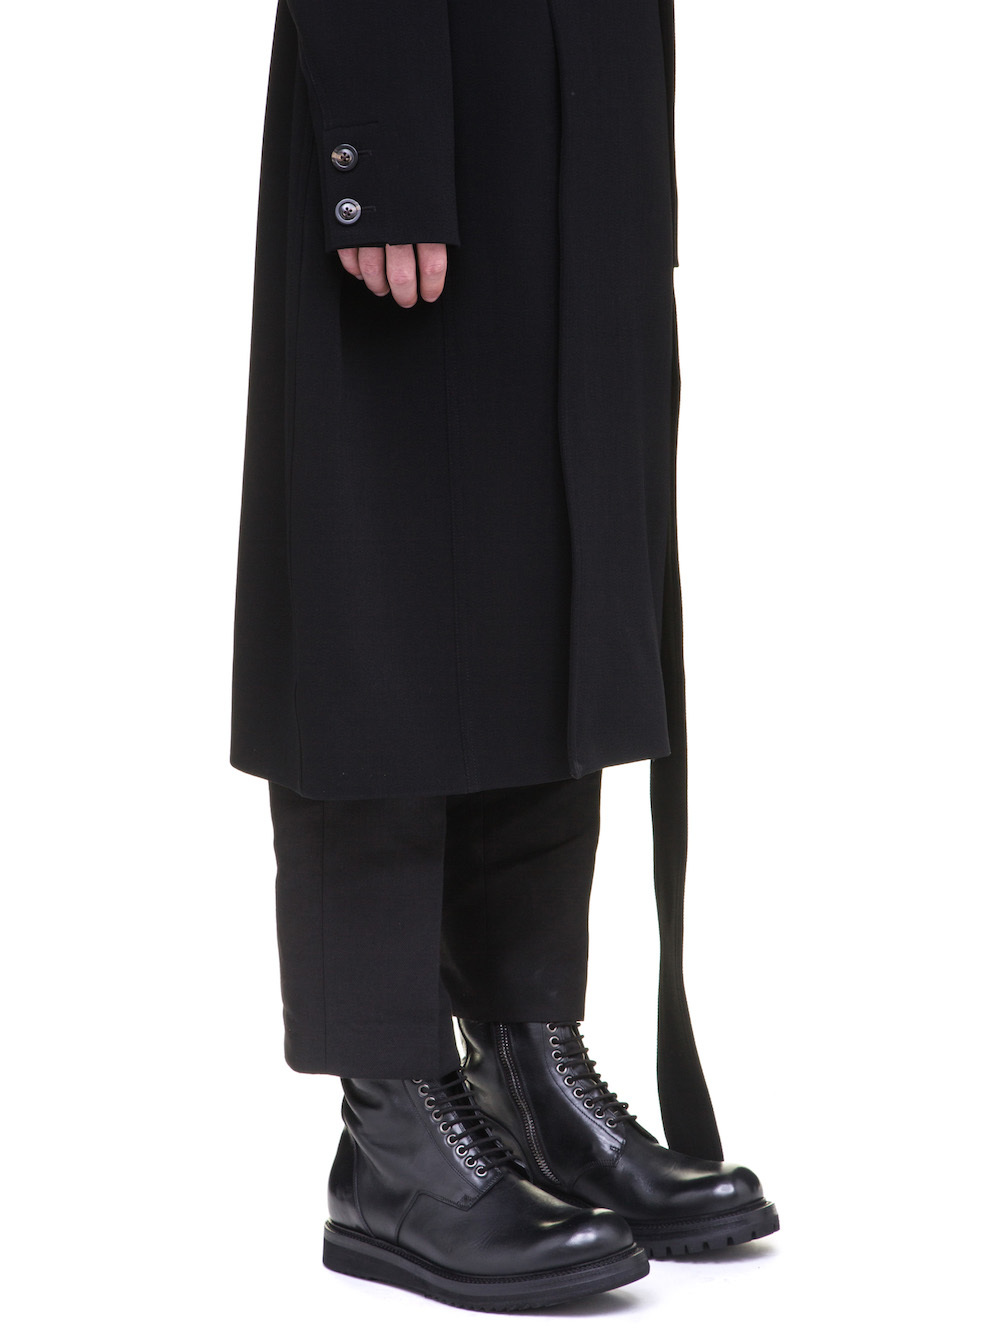 RICK OWENS DIRT TRENCH